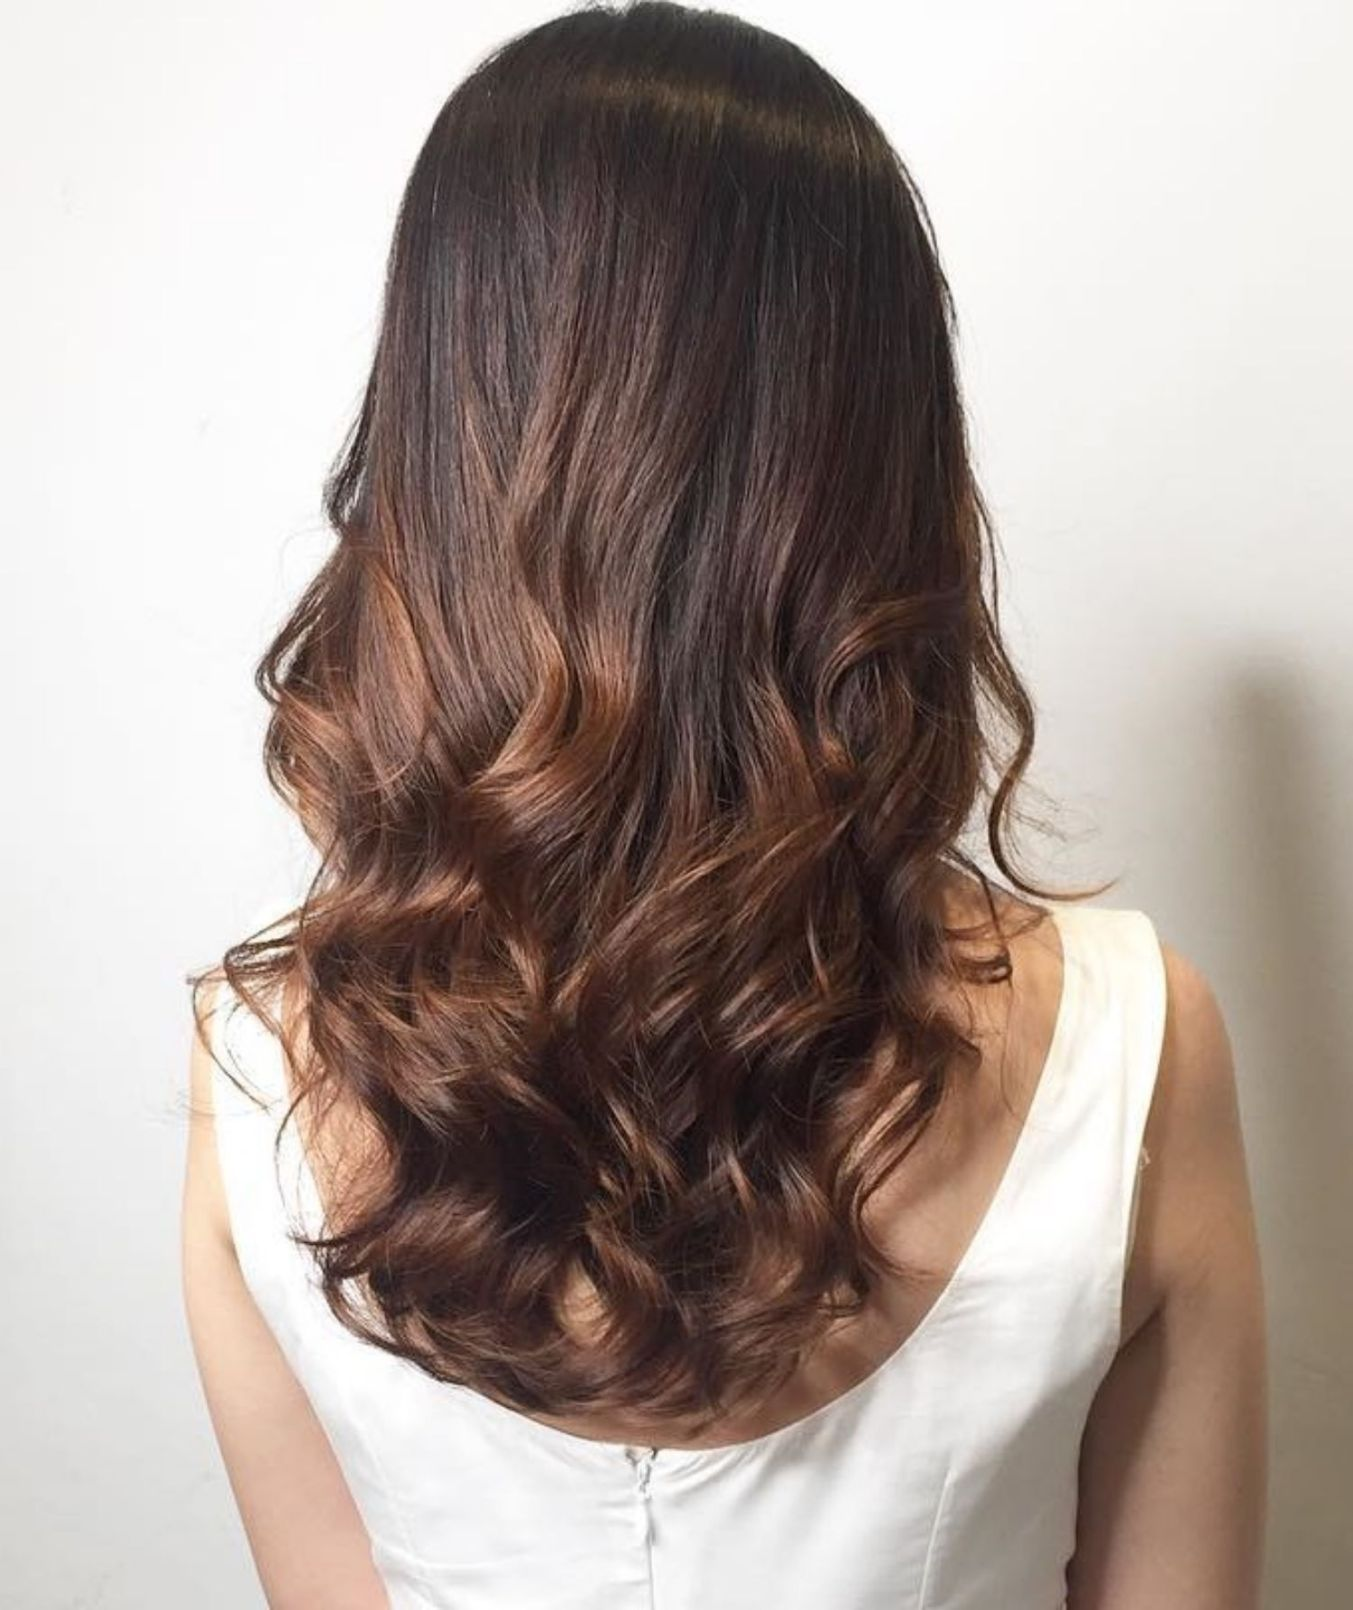 50 Gorgeous Perms Looks Say Hello To Your Future Curls Long Hair Perm Permed Hairstyles Curly Hair Styles